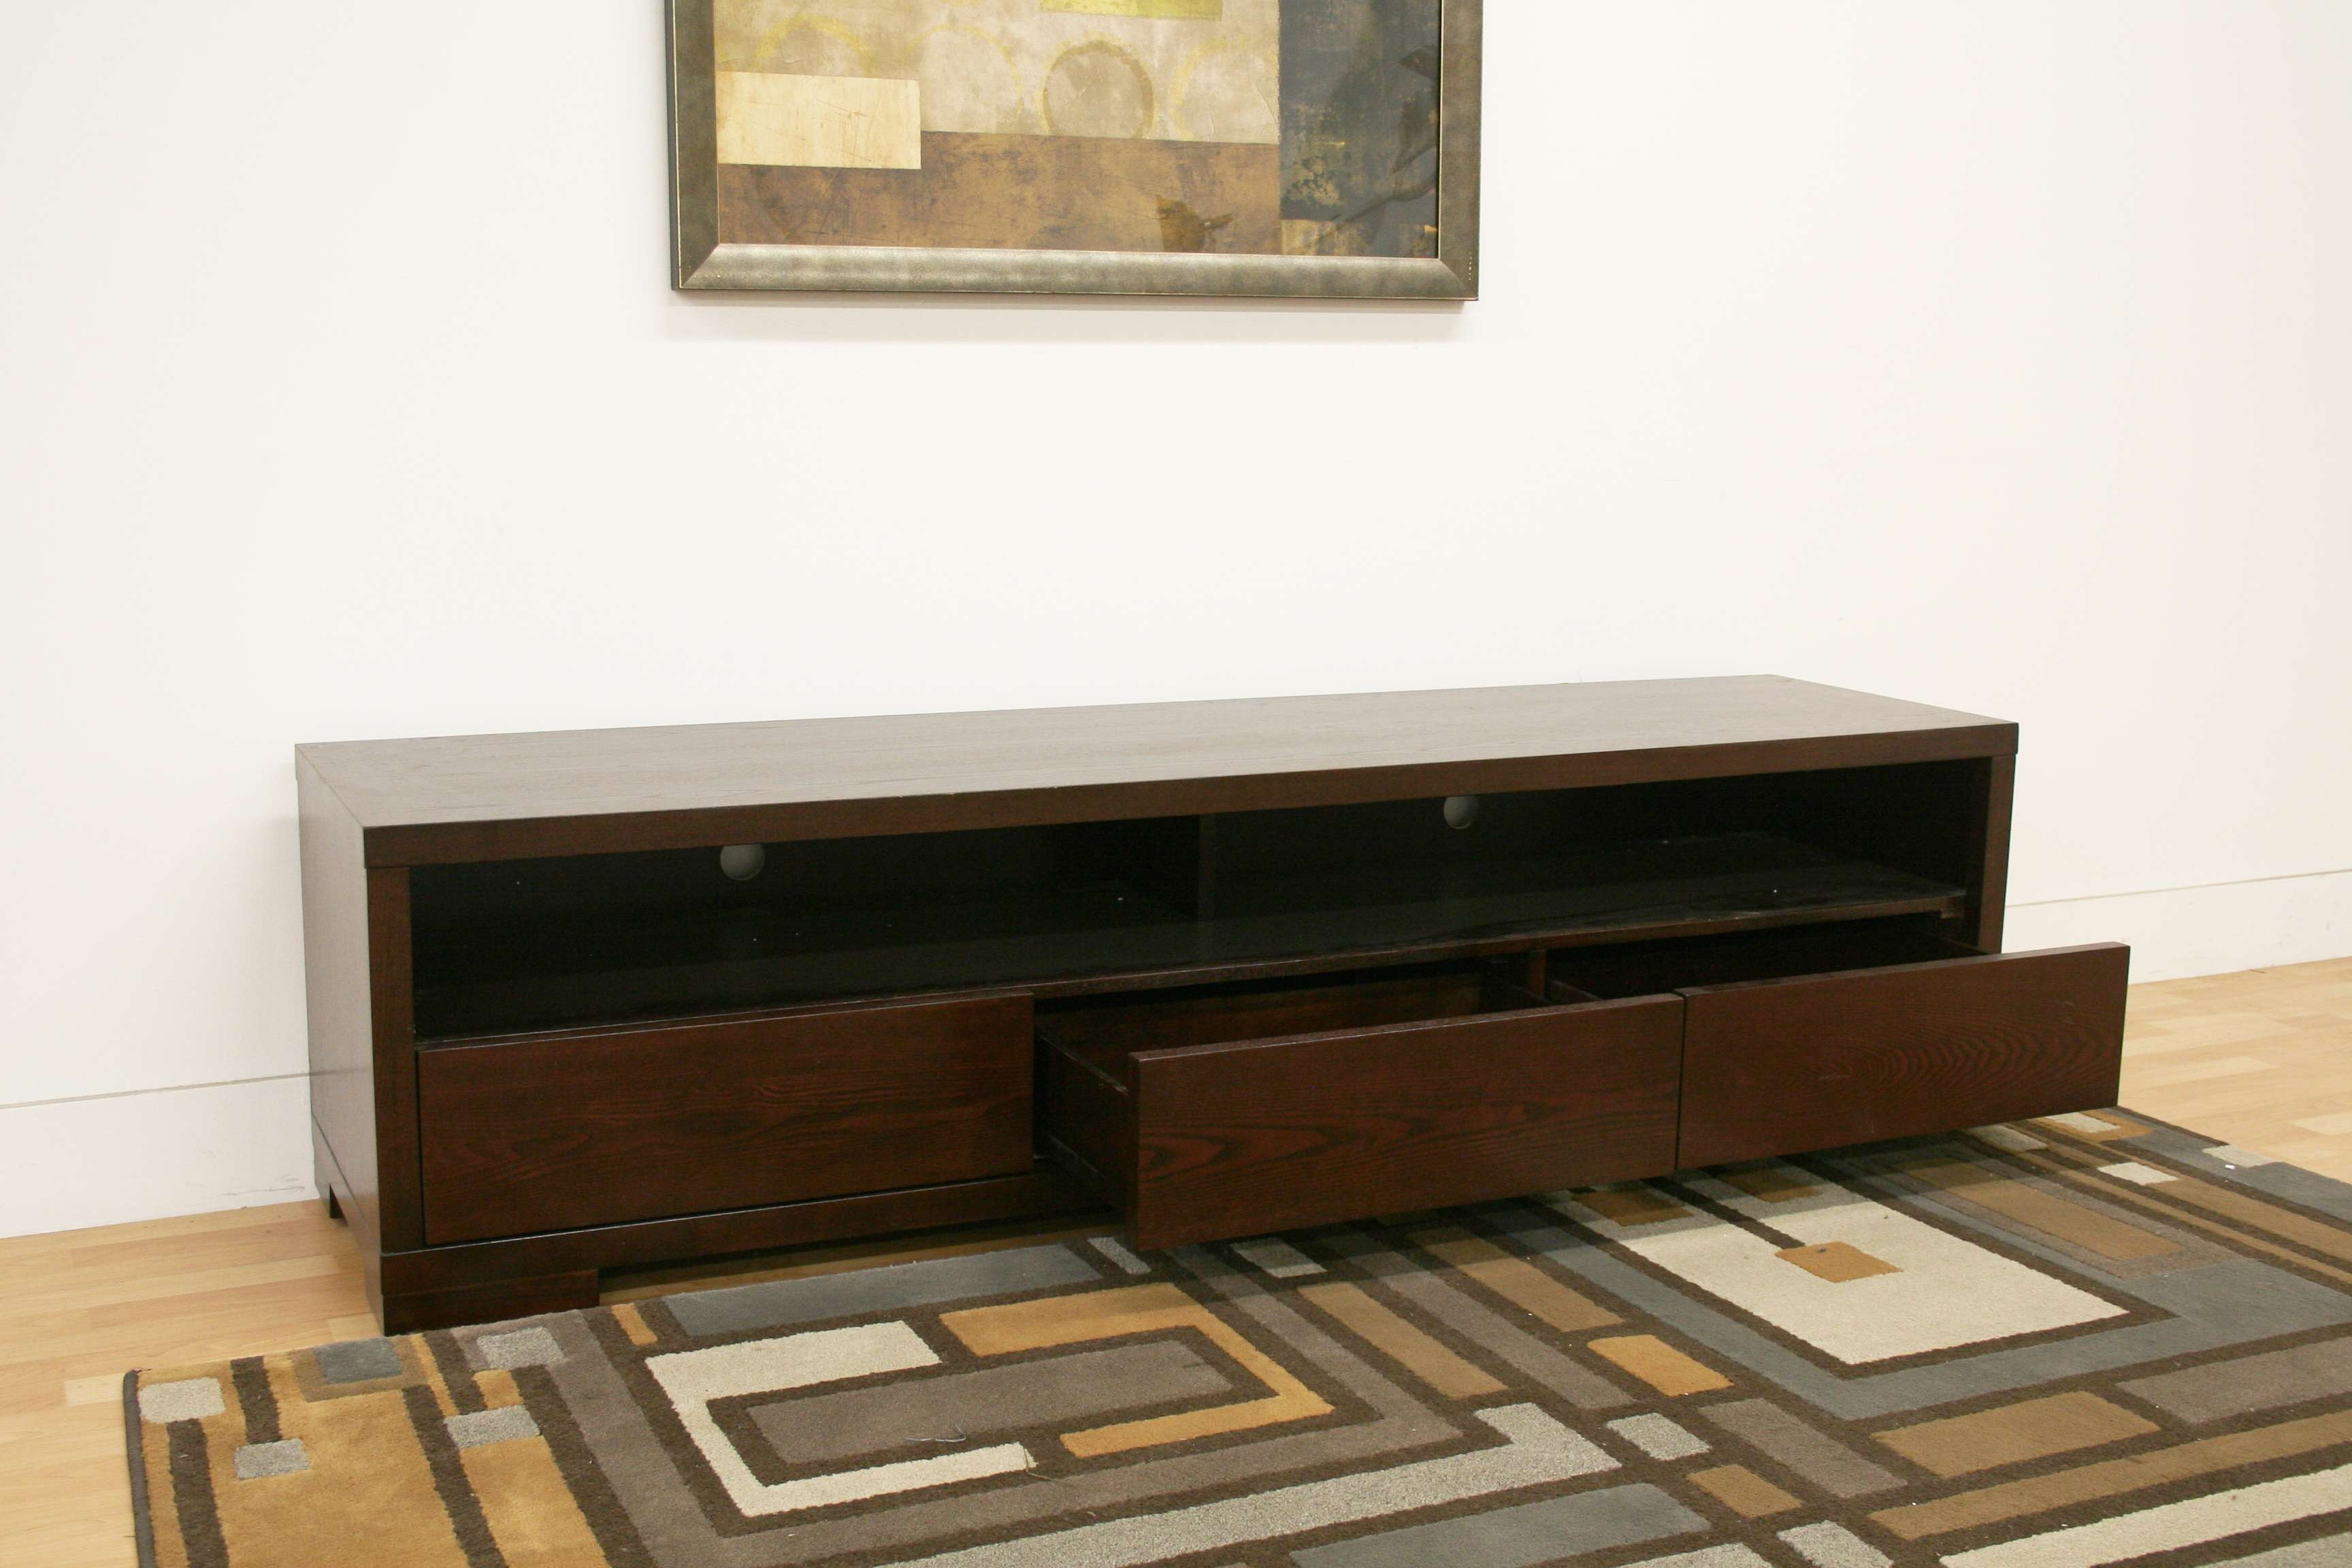 Bedrooms : Fascinating Awesome Plasma Tv Cabinet Designs Home Regarding Dark Wood Tv Cabinets (View 5 of 20)